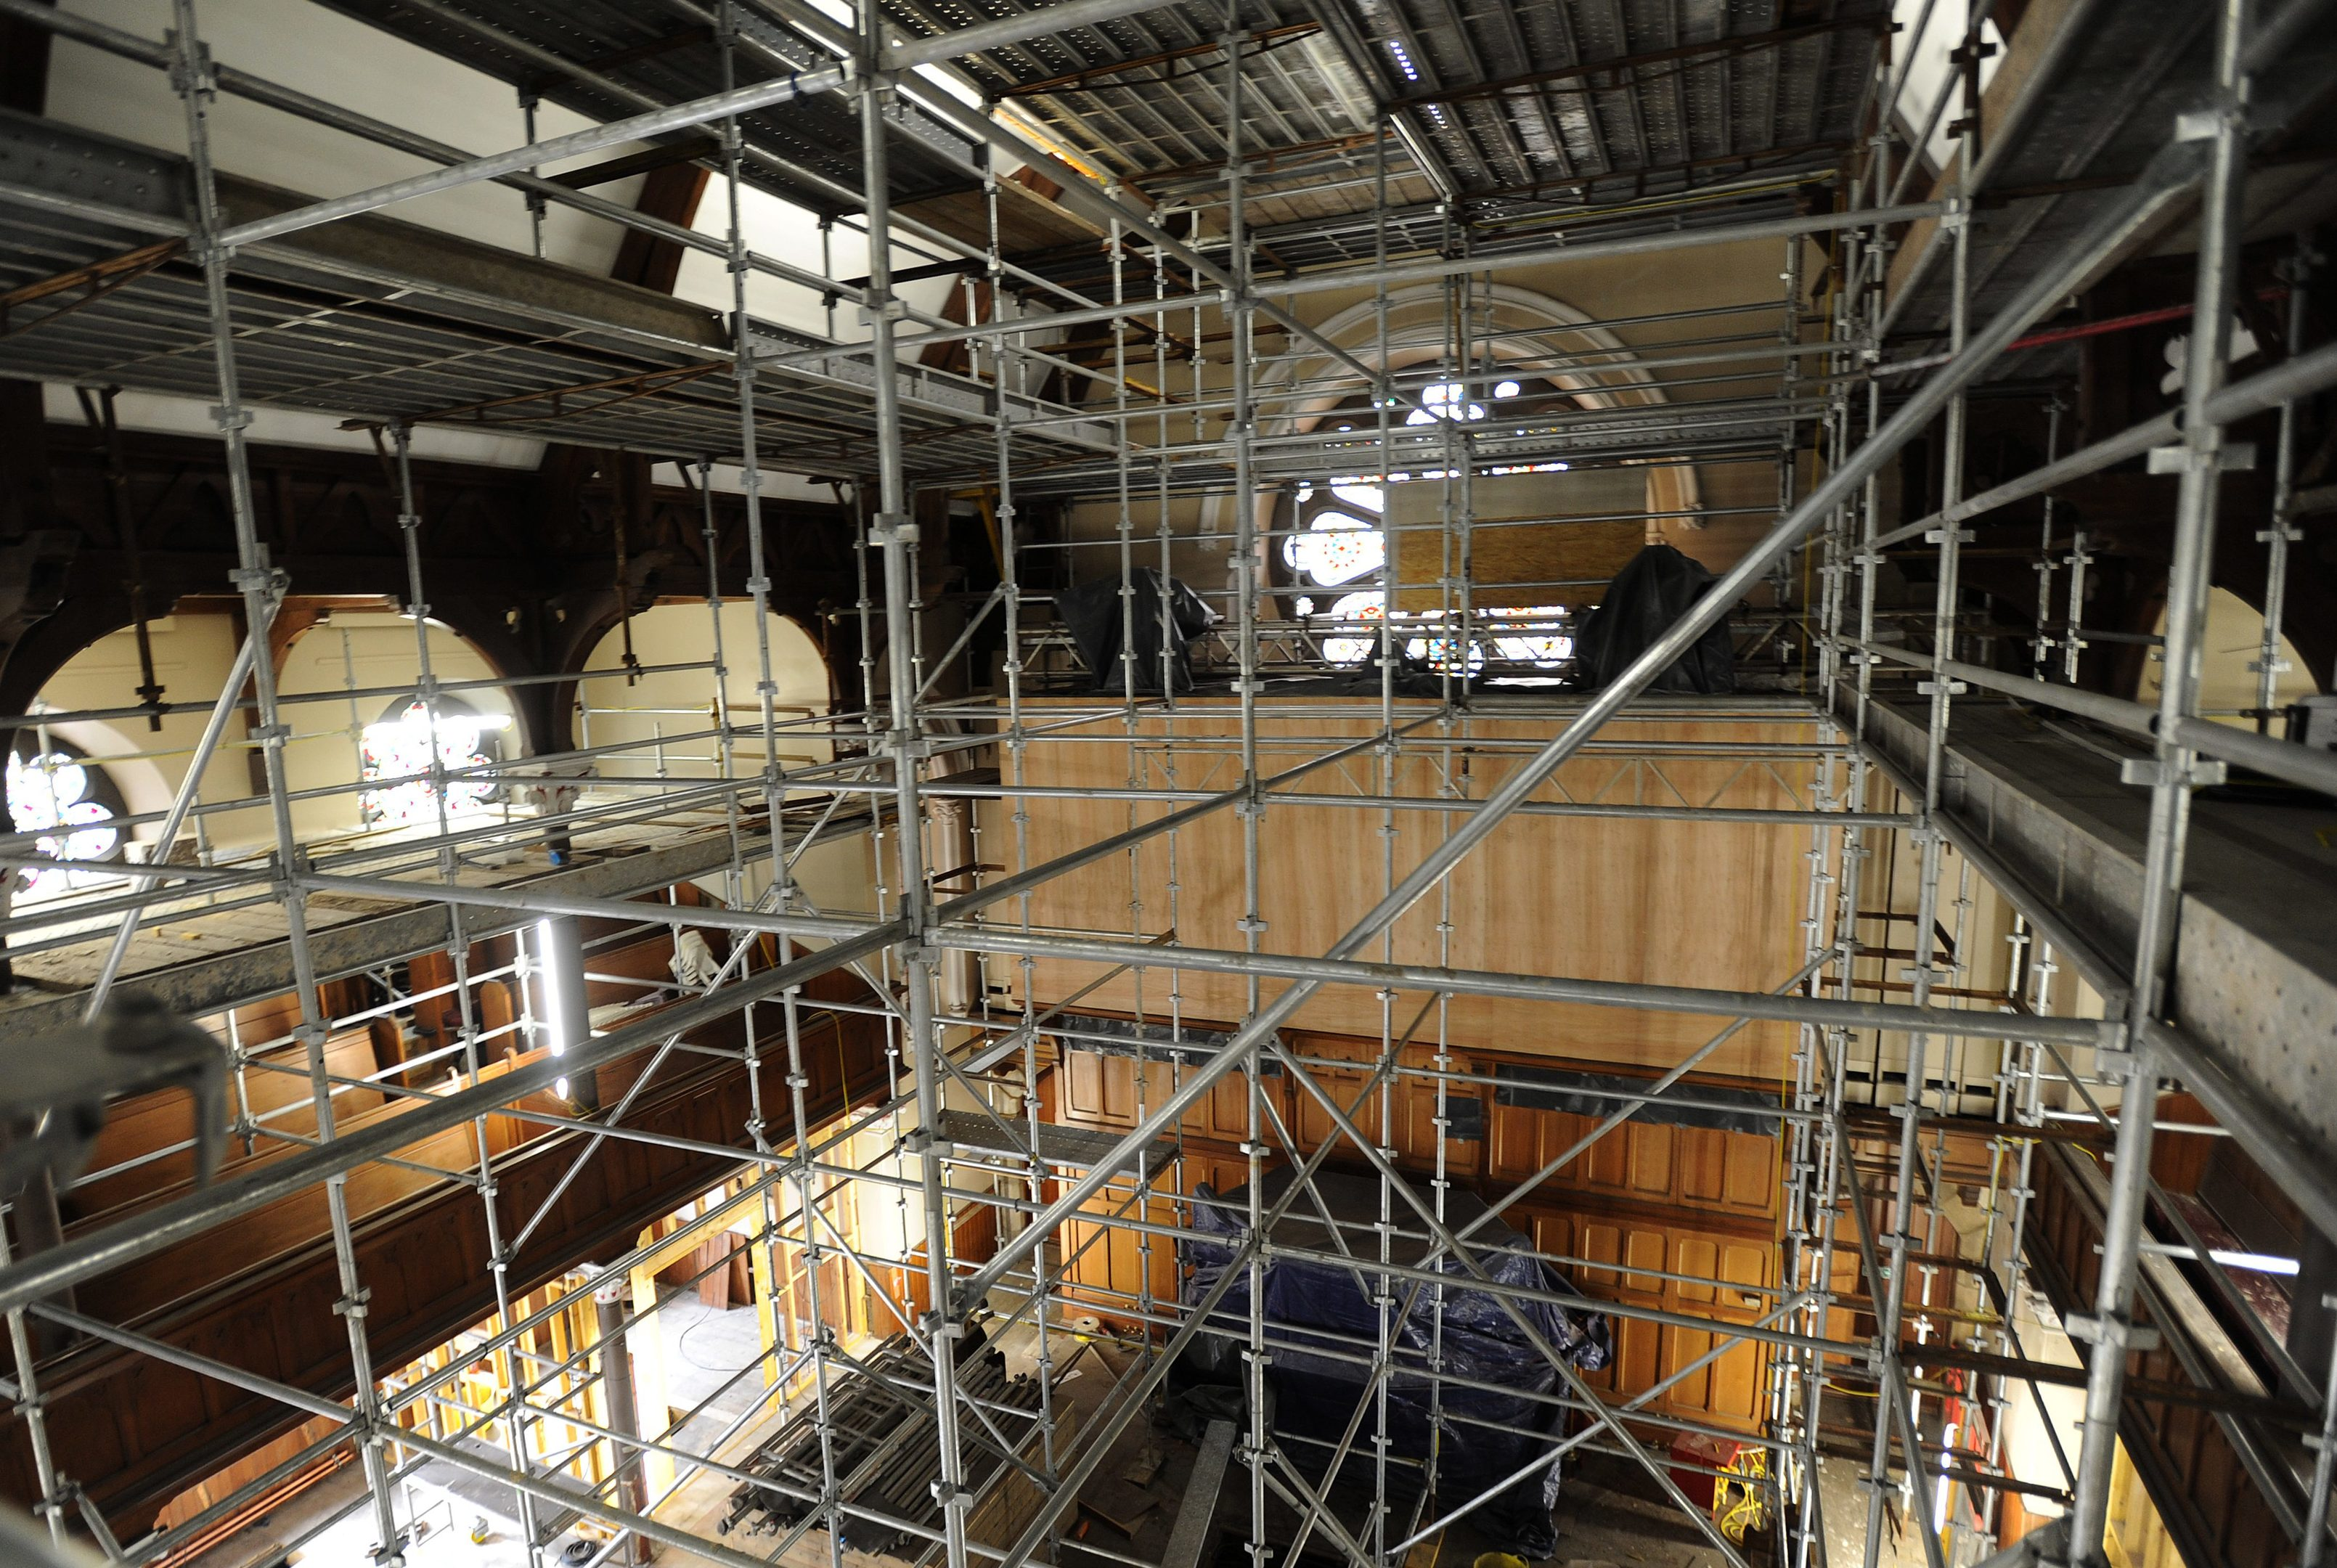 Work ongoing inside the church.